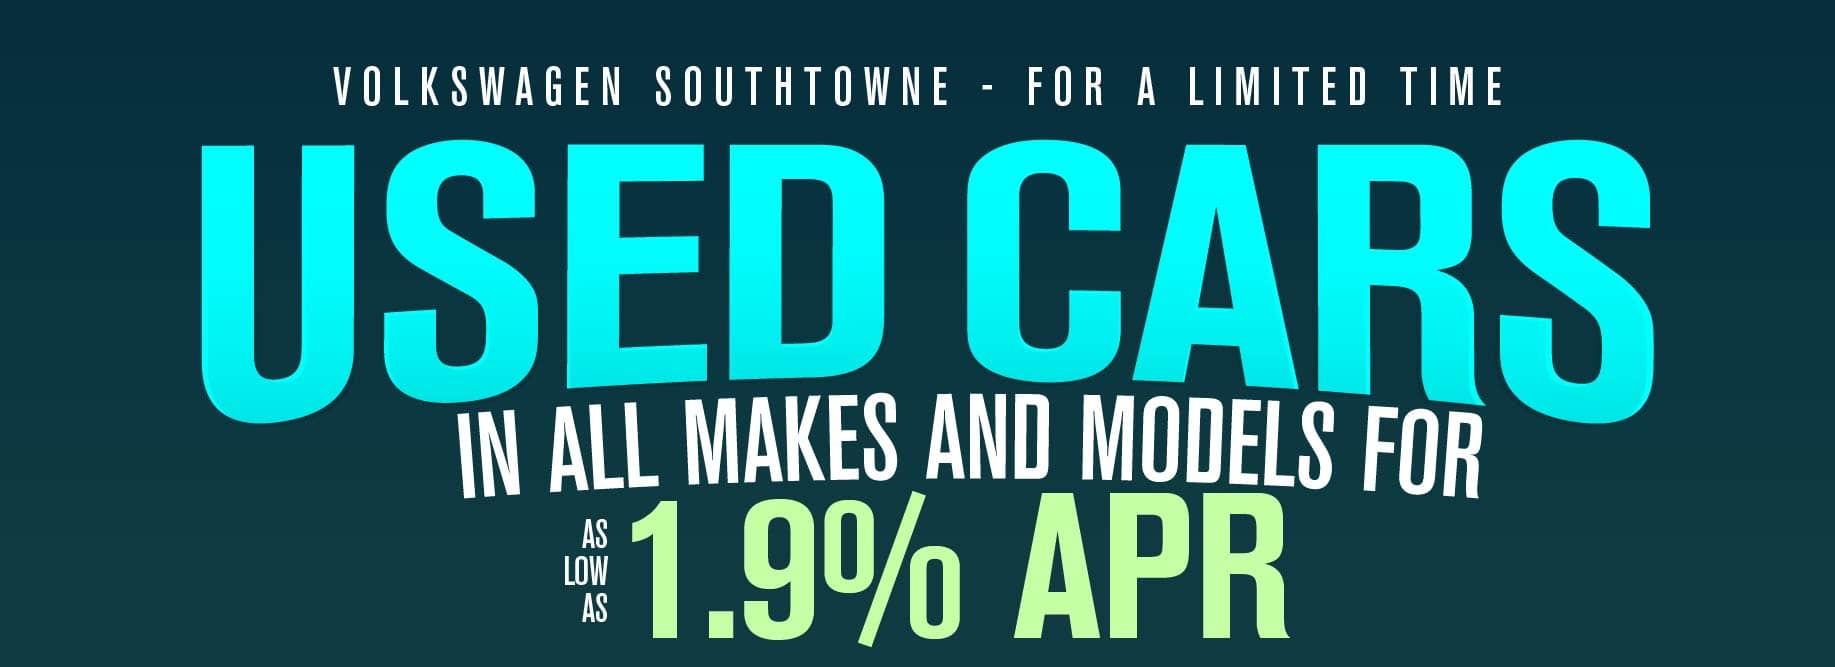 Get as low as 1.9% on used cars at Volkswagen SouthTowne!